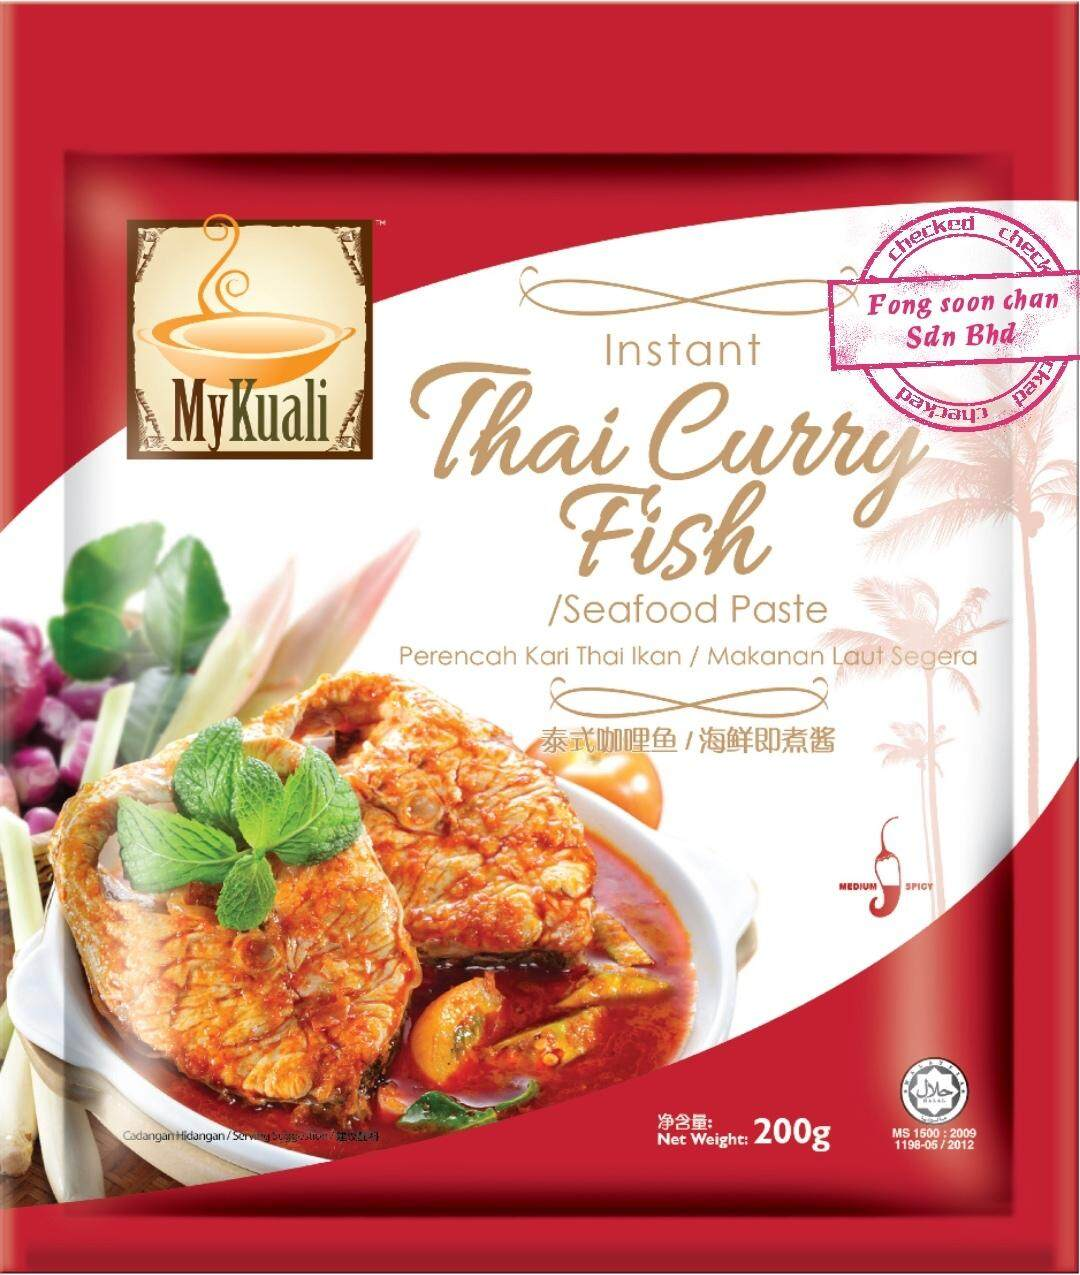 [FSC] Mykuali Instant Thai Curry Fish & Seafood Paste 200gm